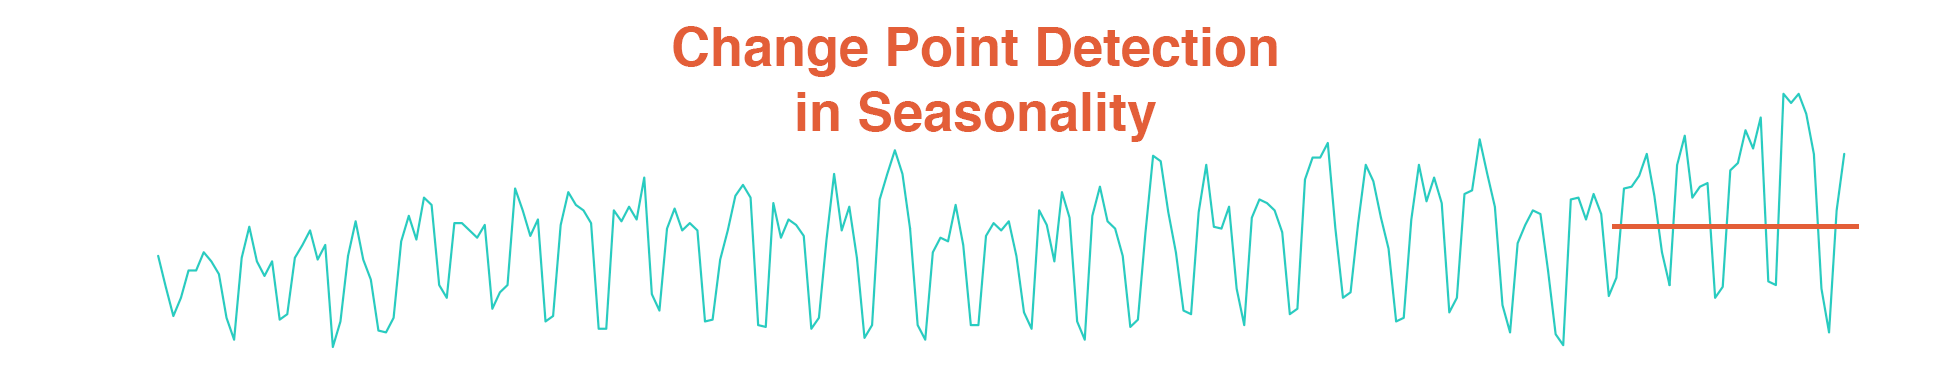 change-point-seasonality